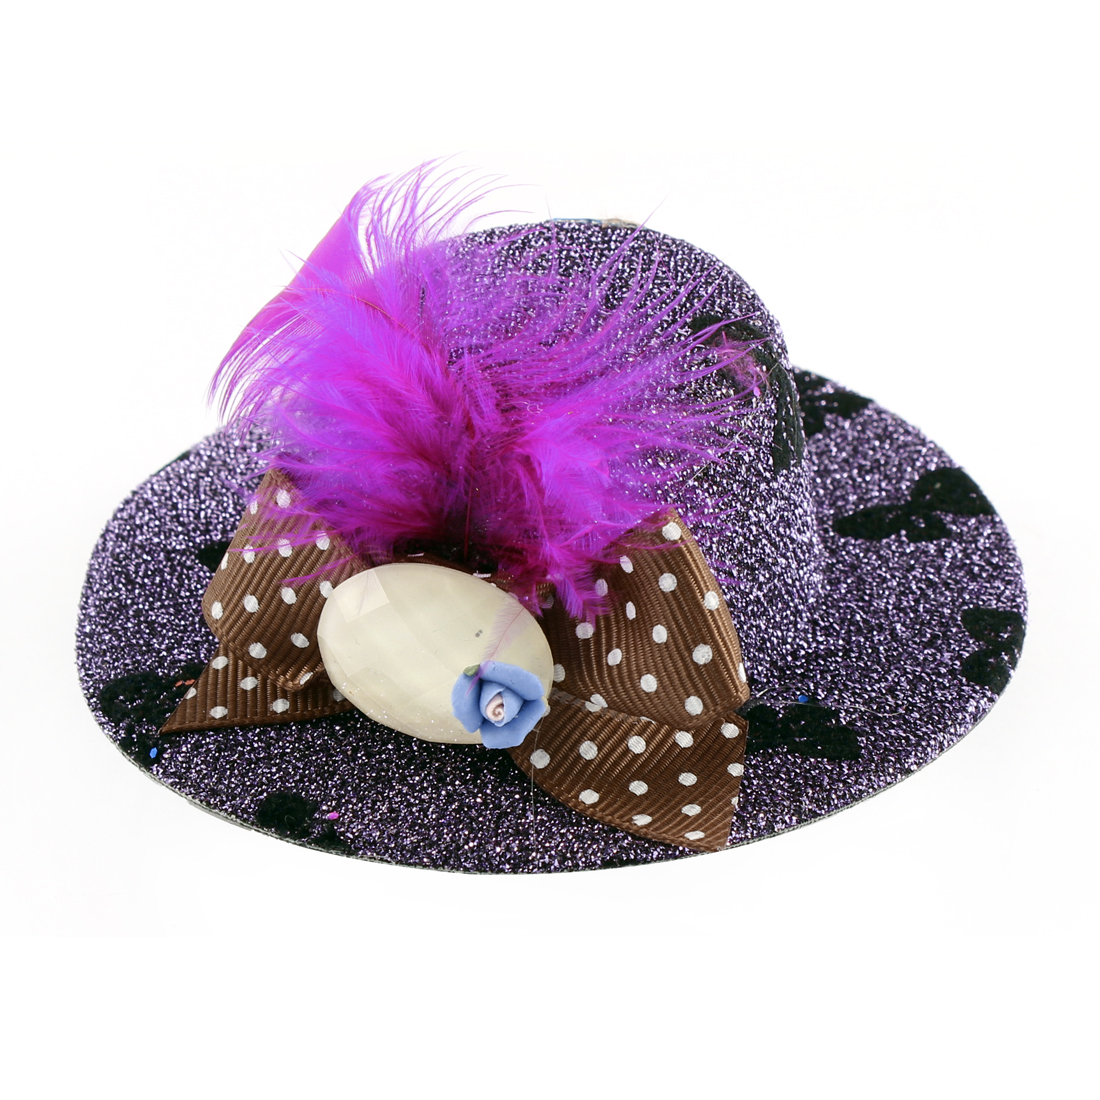 Lady Mini Bowknot Feather Blue Flower Detail Glittery Tinsel Coated Top Hat Hairclip Purple